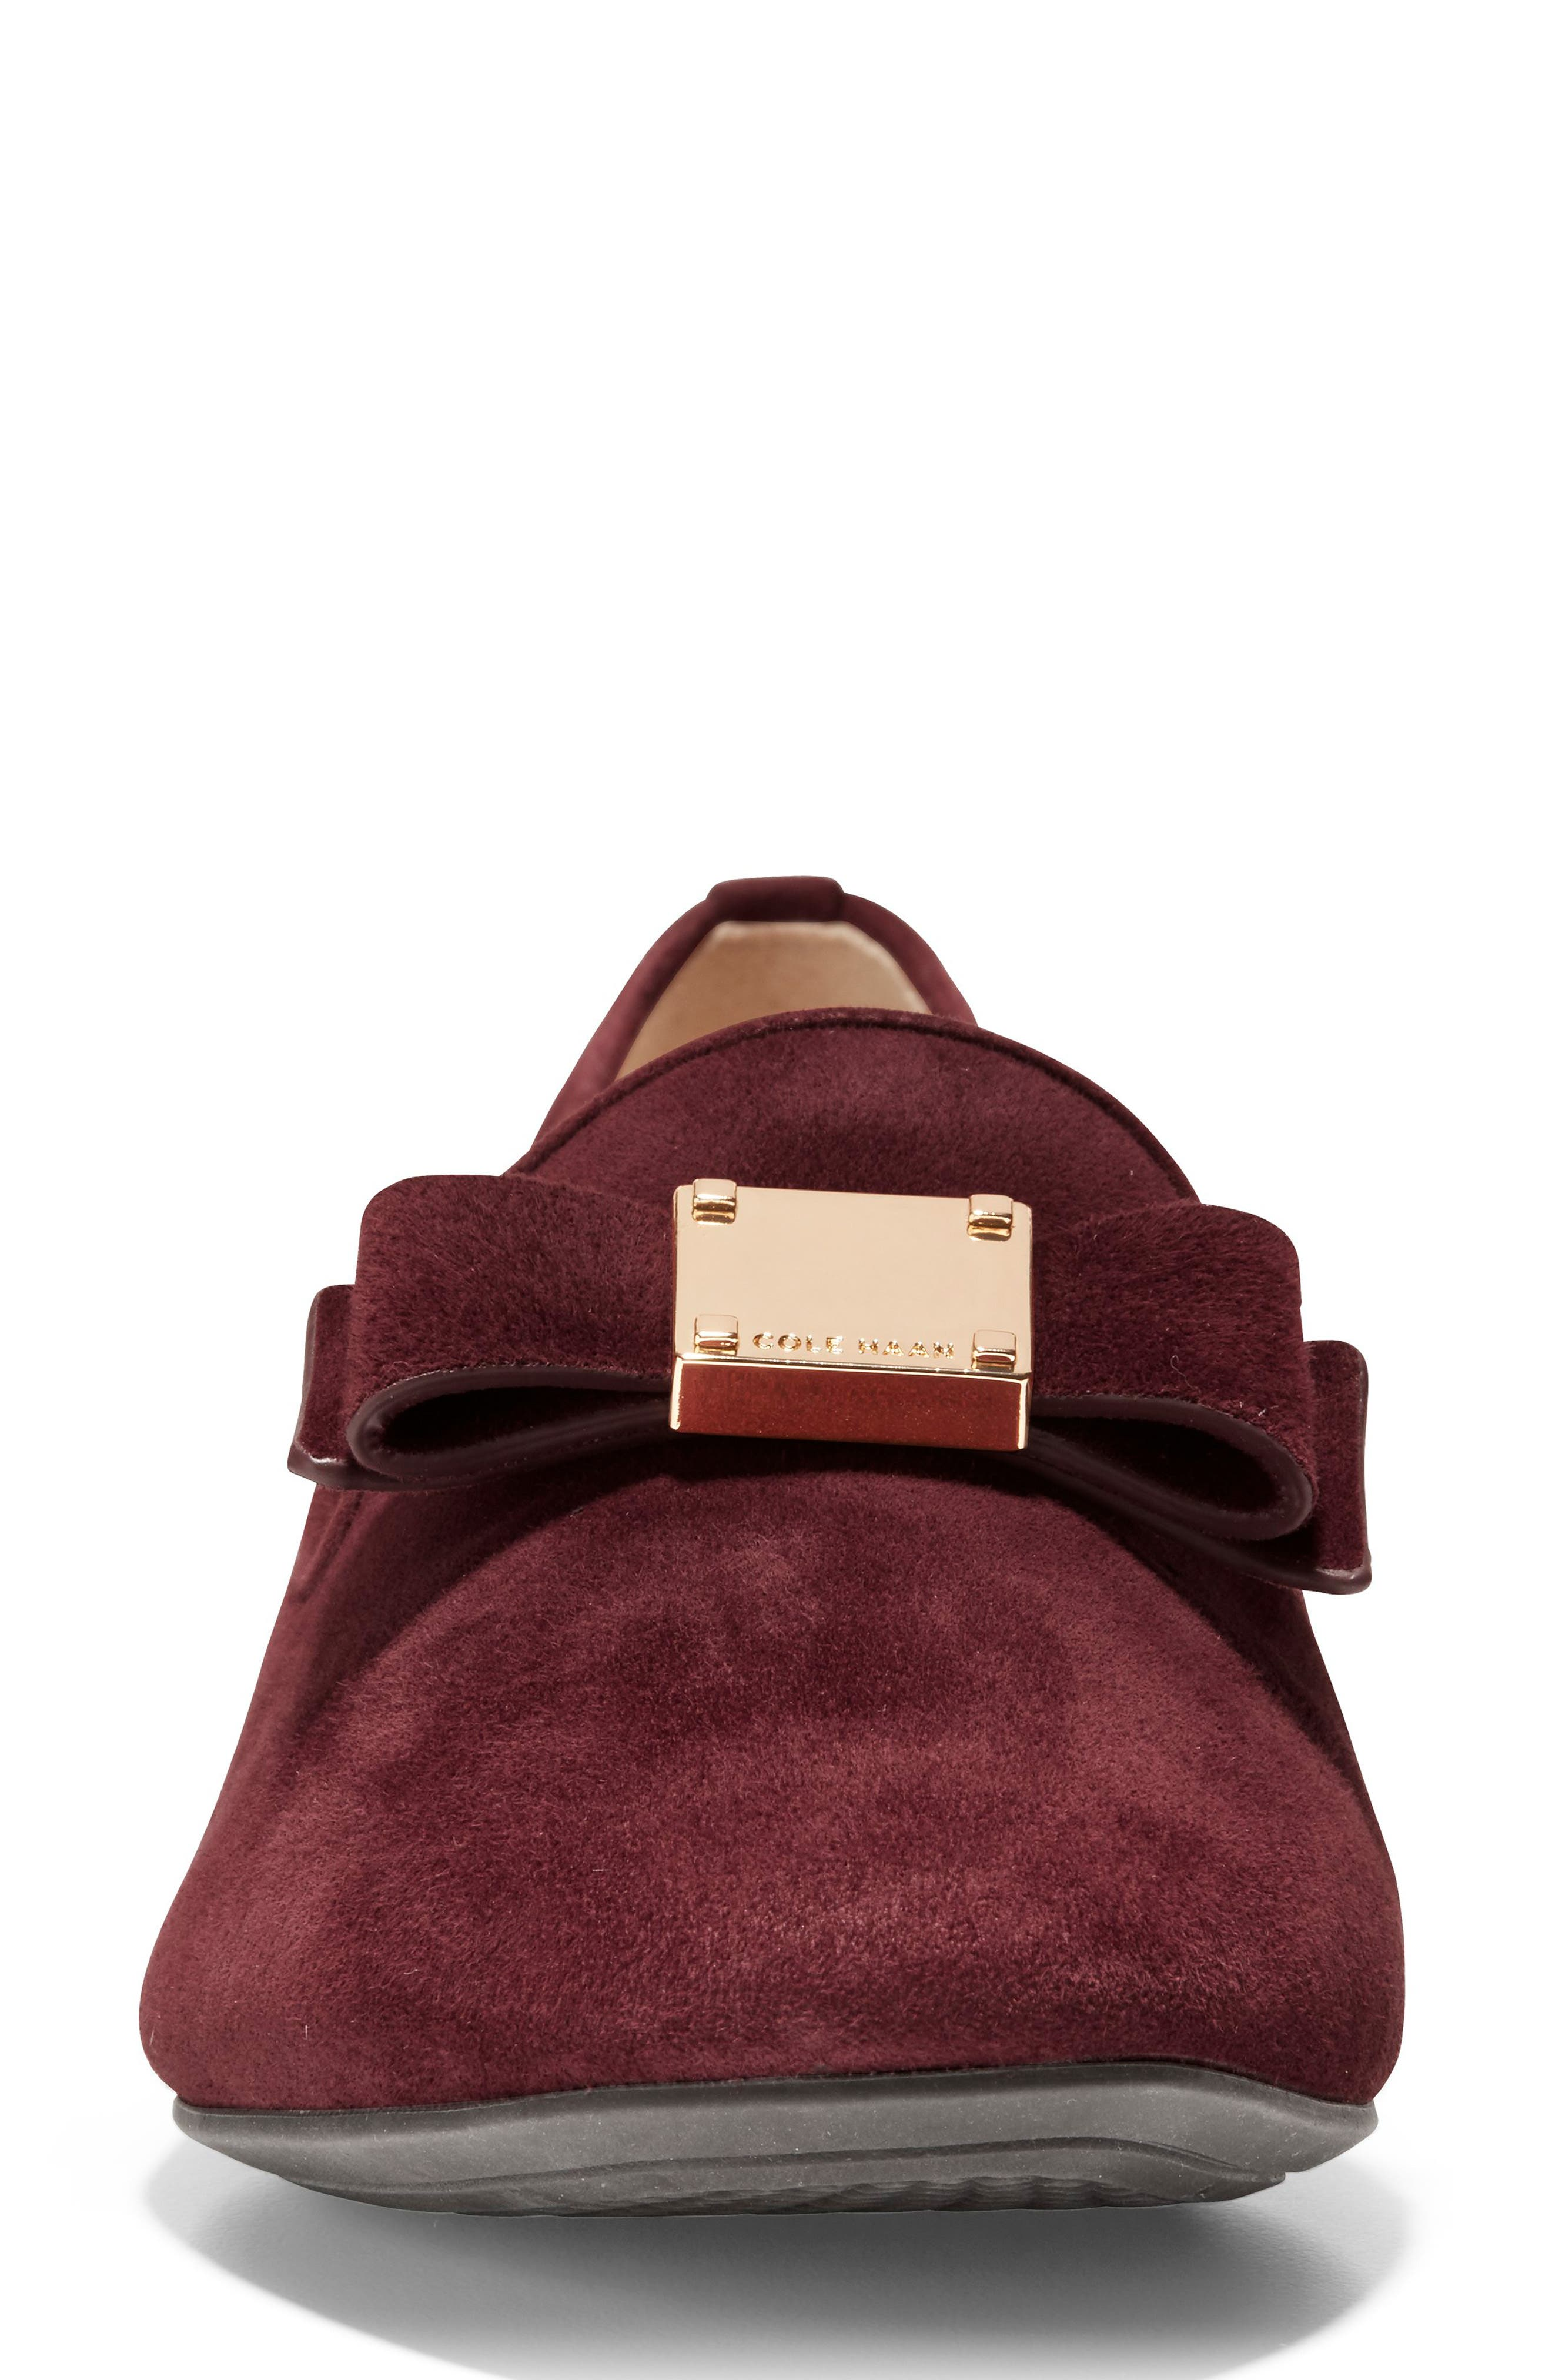 Tali Bow Loafer,                             Alternate thumbnail 4, color,                             605